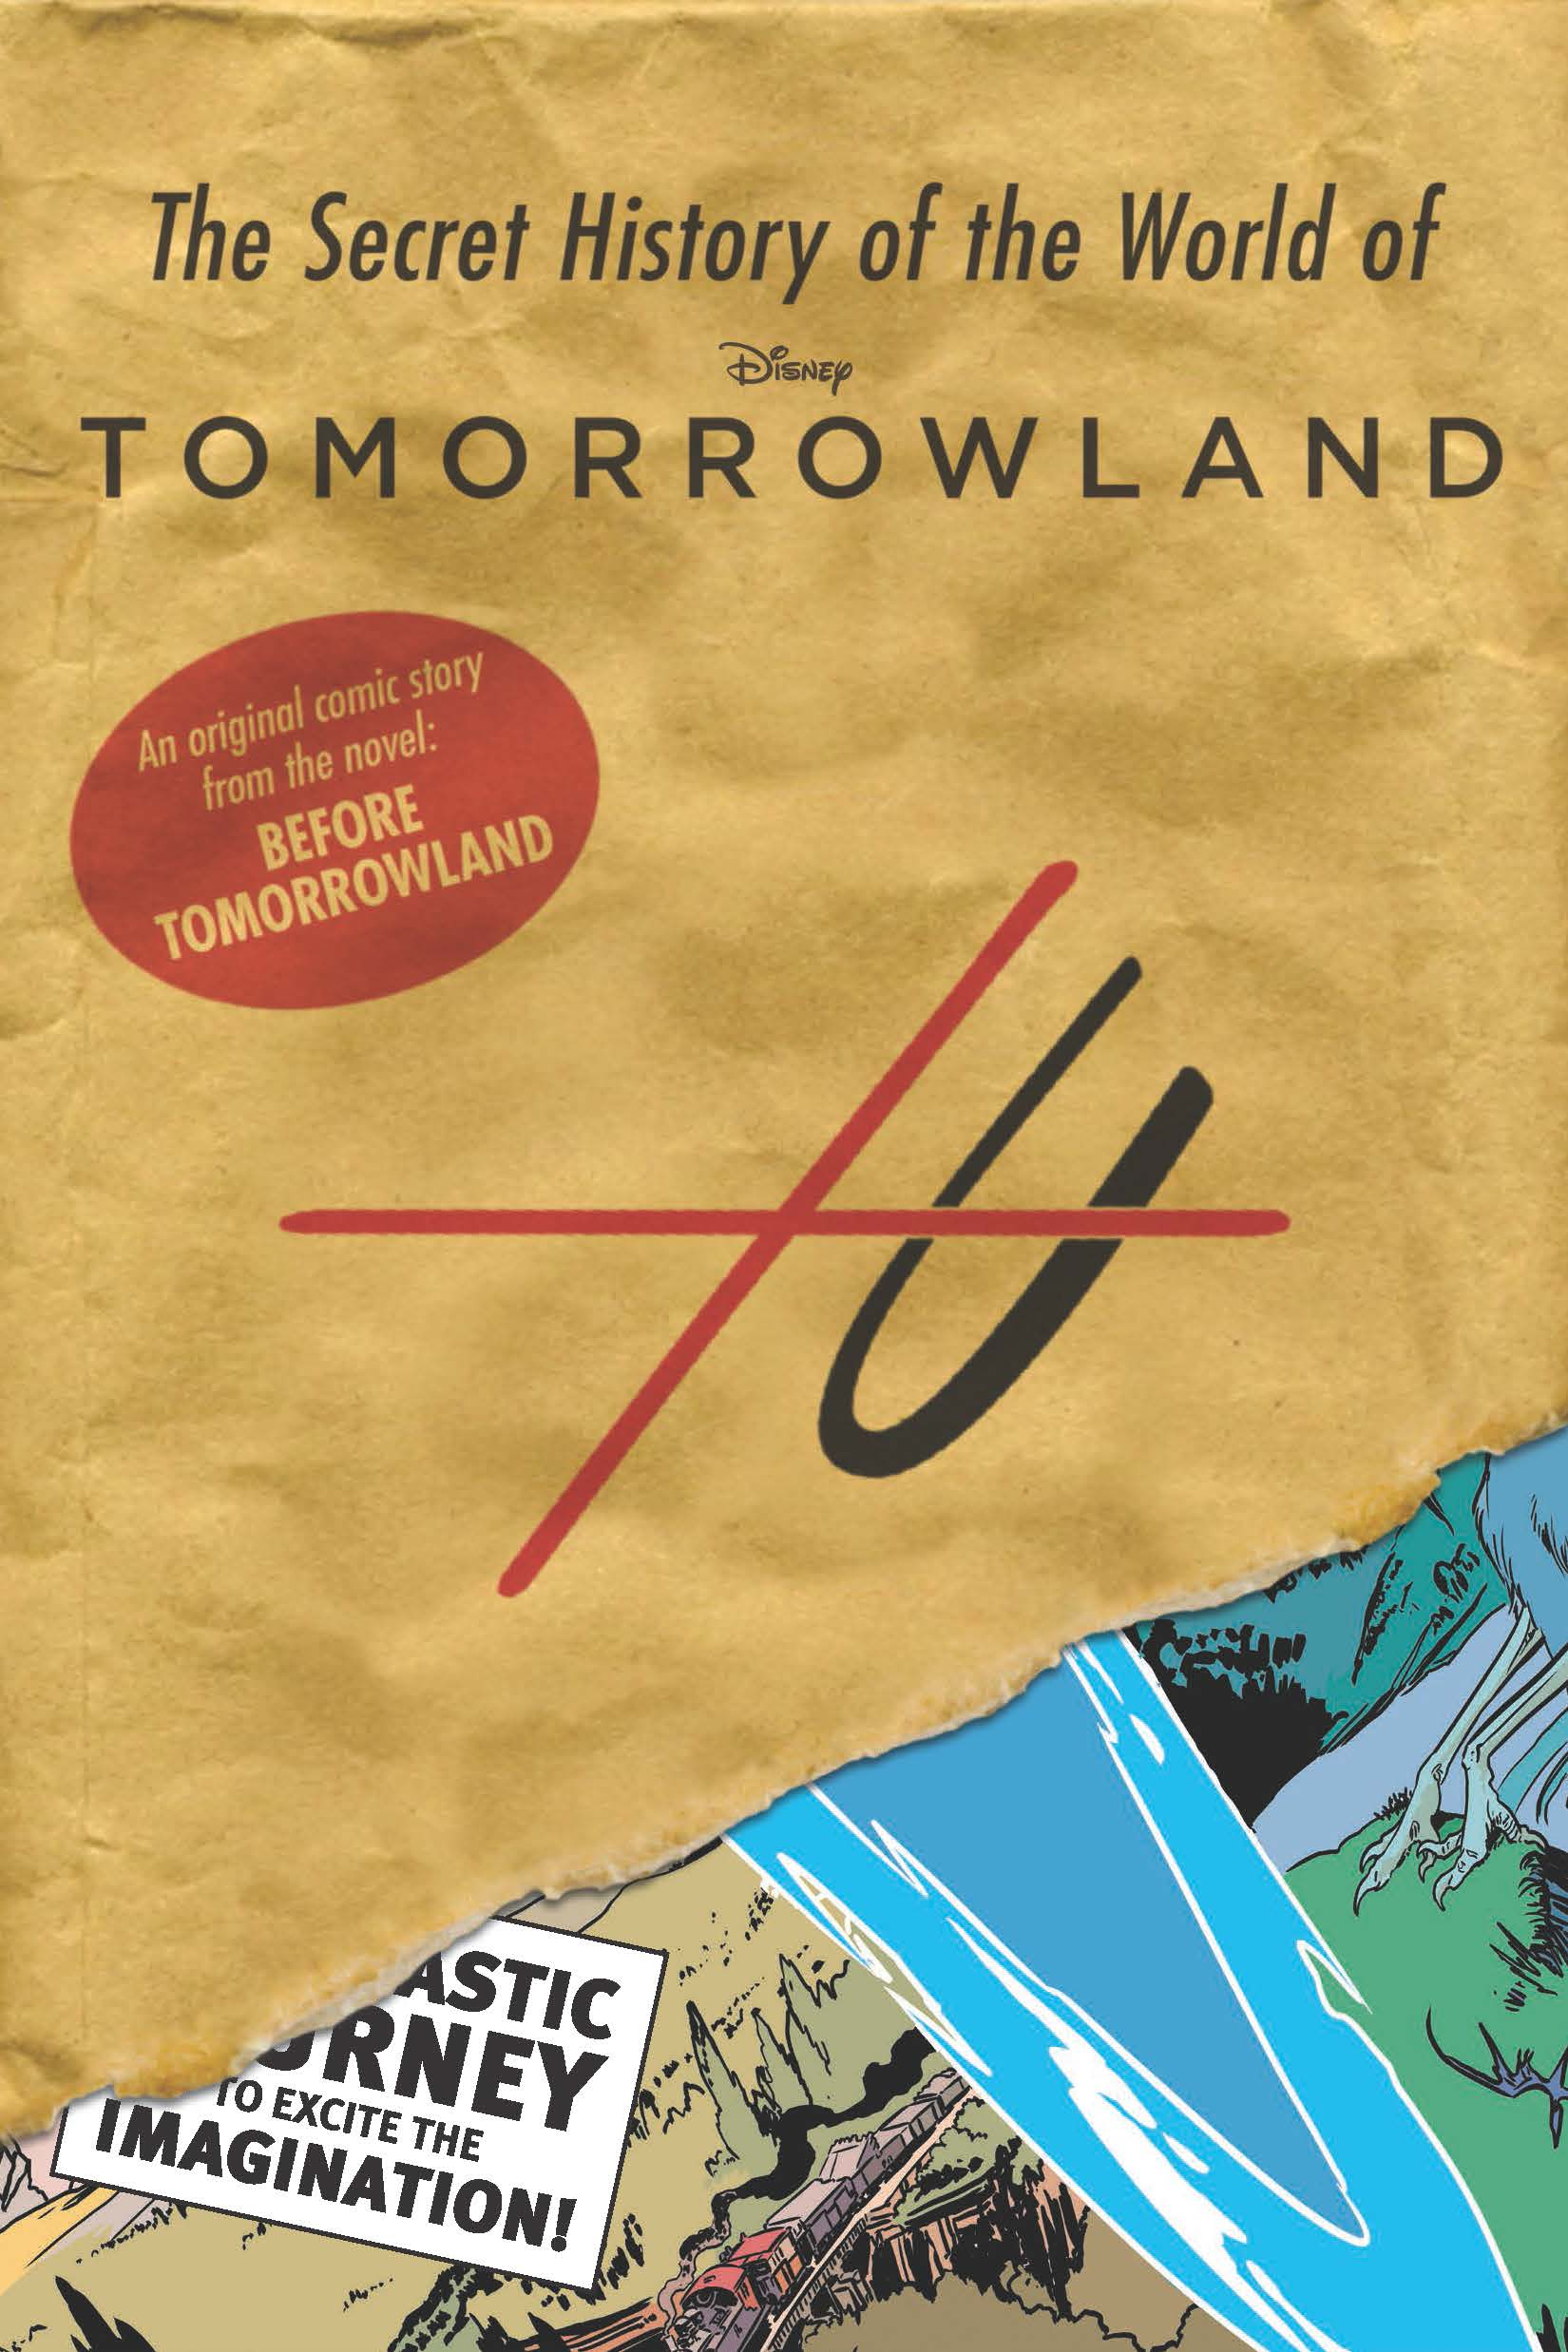 The Secret History of the World of Tomorrowland